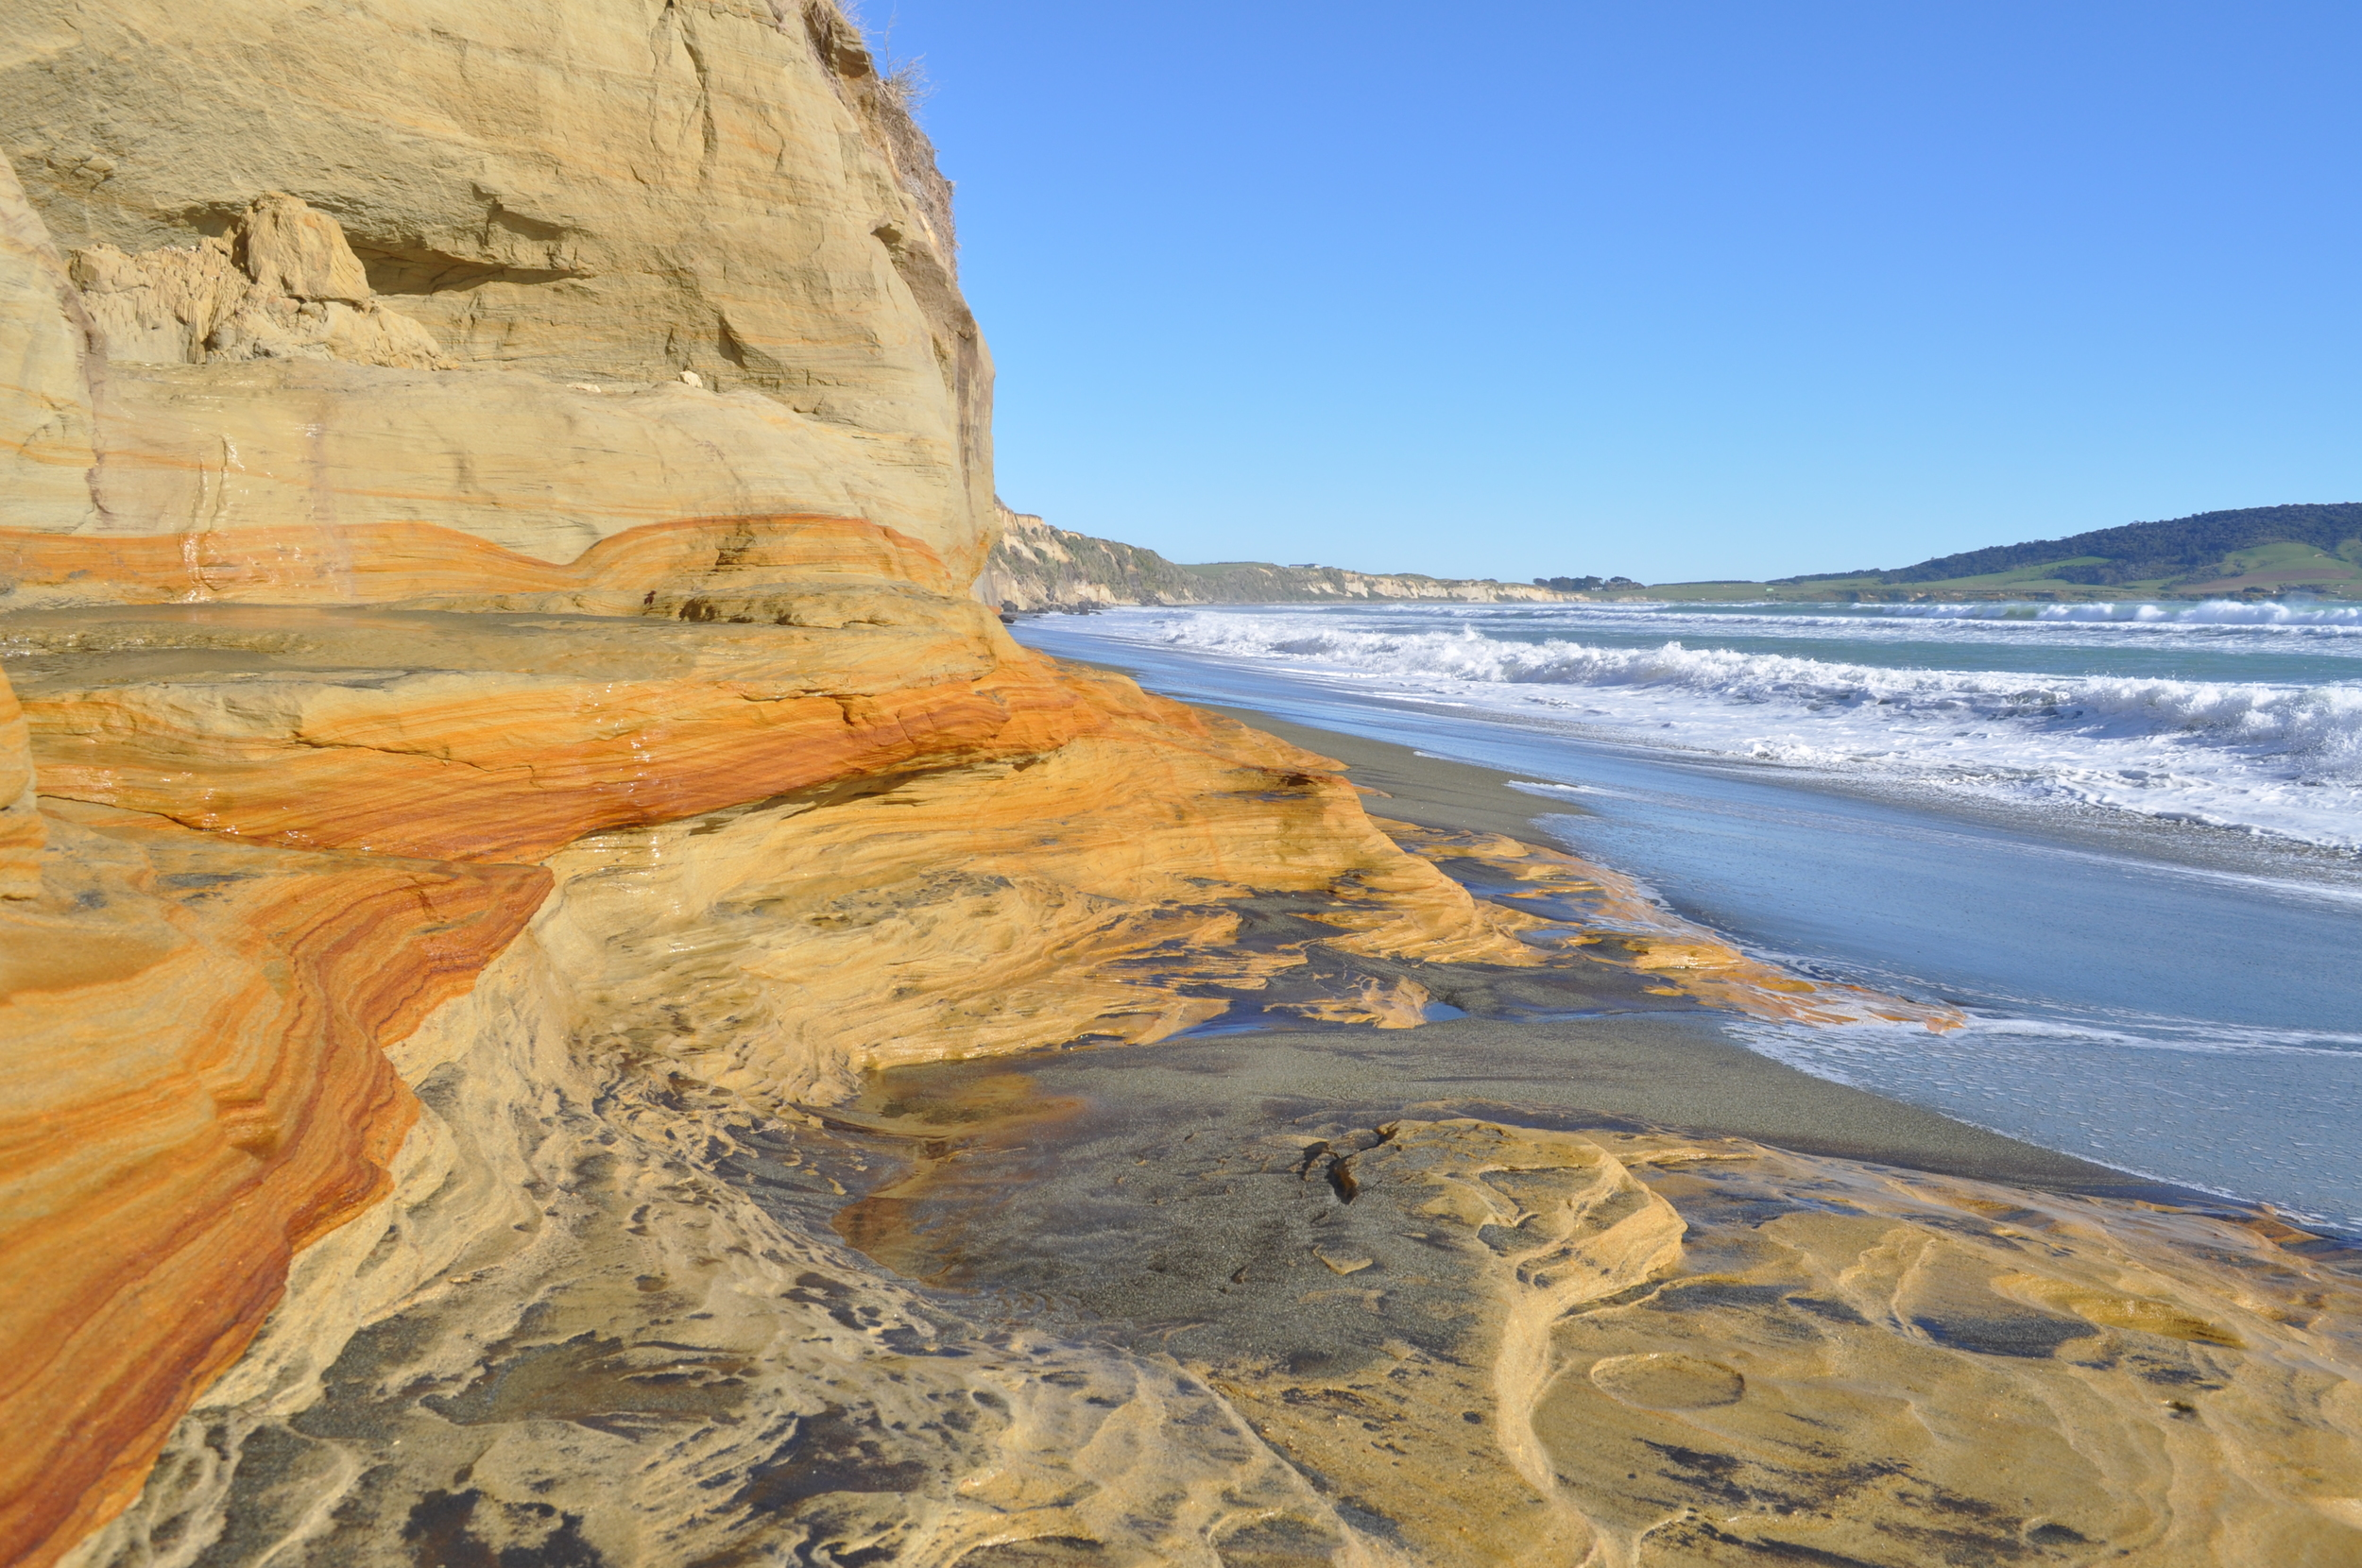 Sandstone cliffs lined the water and exposed layers of history